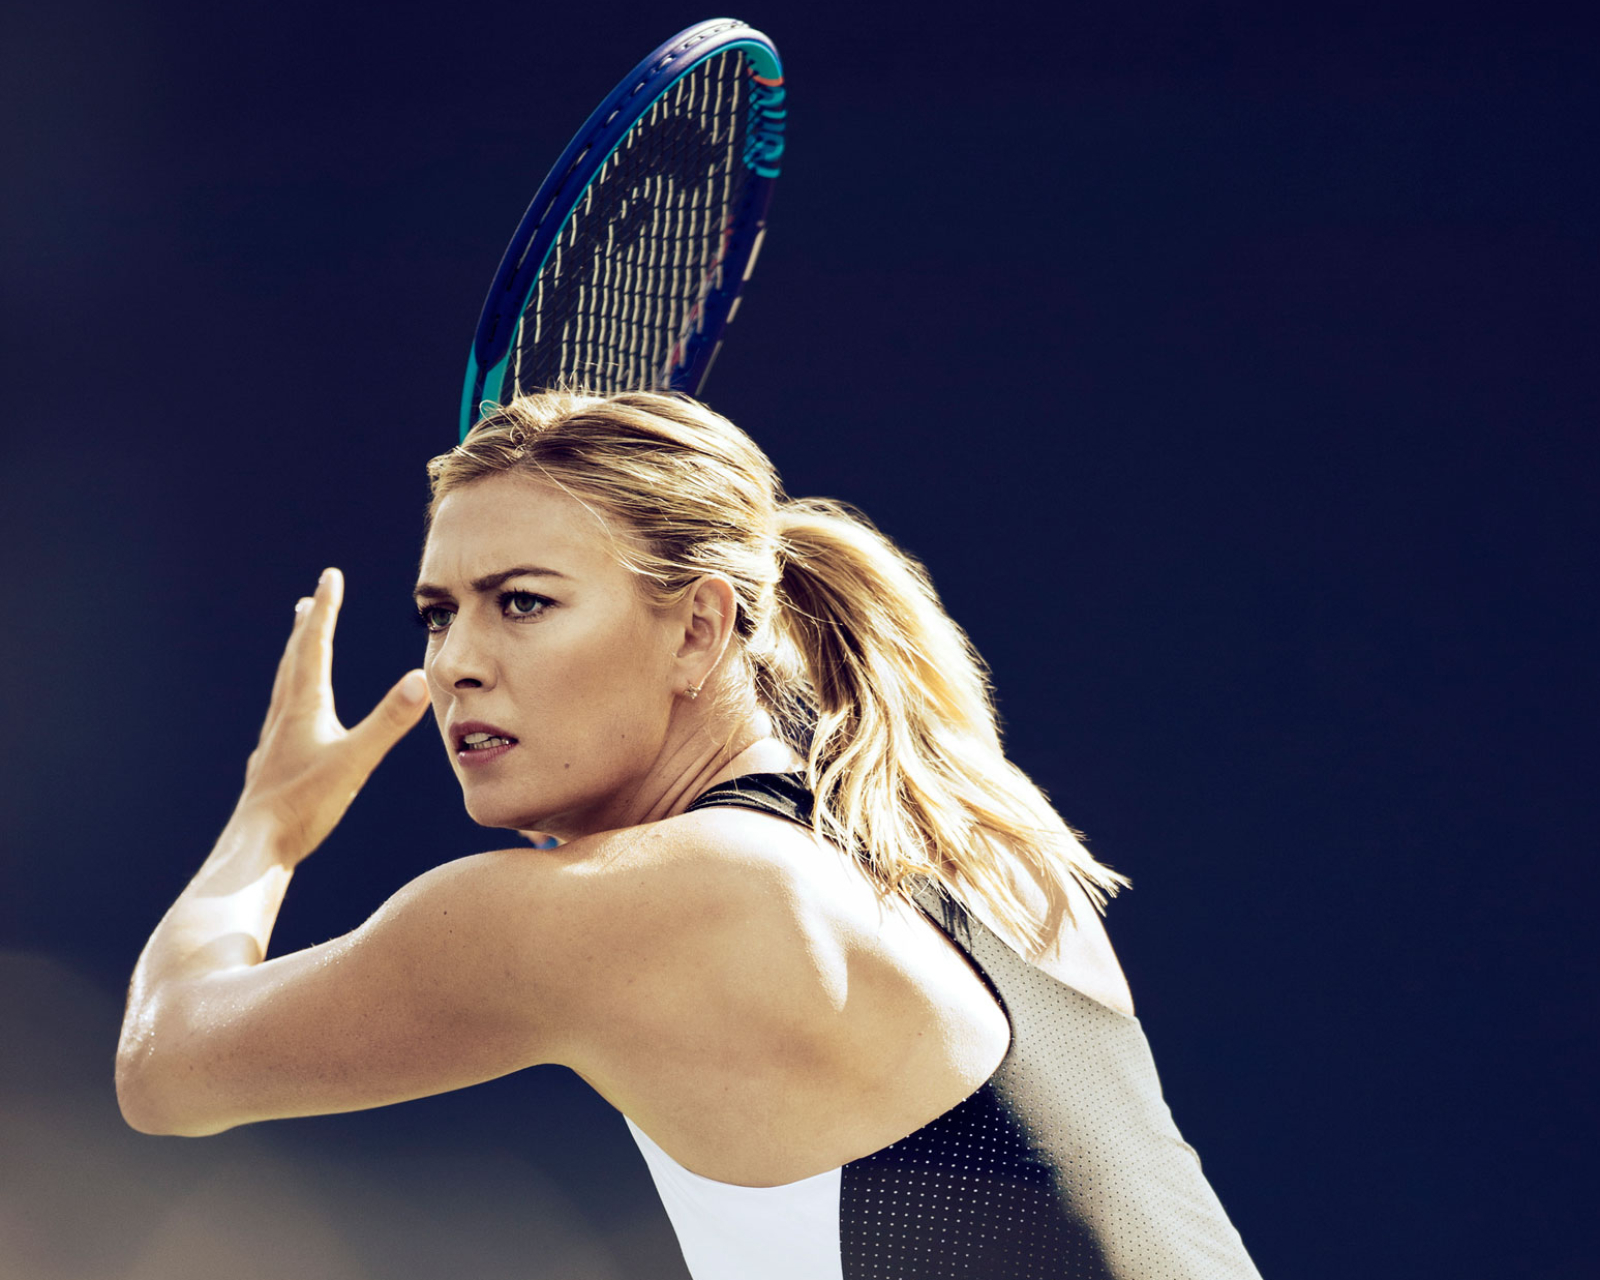 sports/maria sharapova (1600x1280) wallpaper id: 641613 - mobile abyss